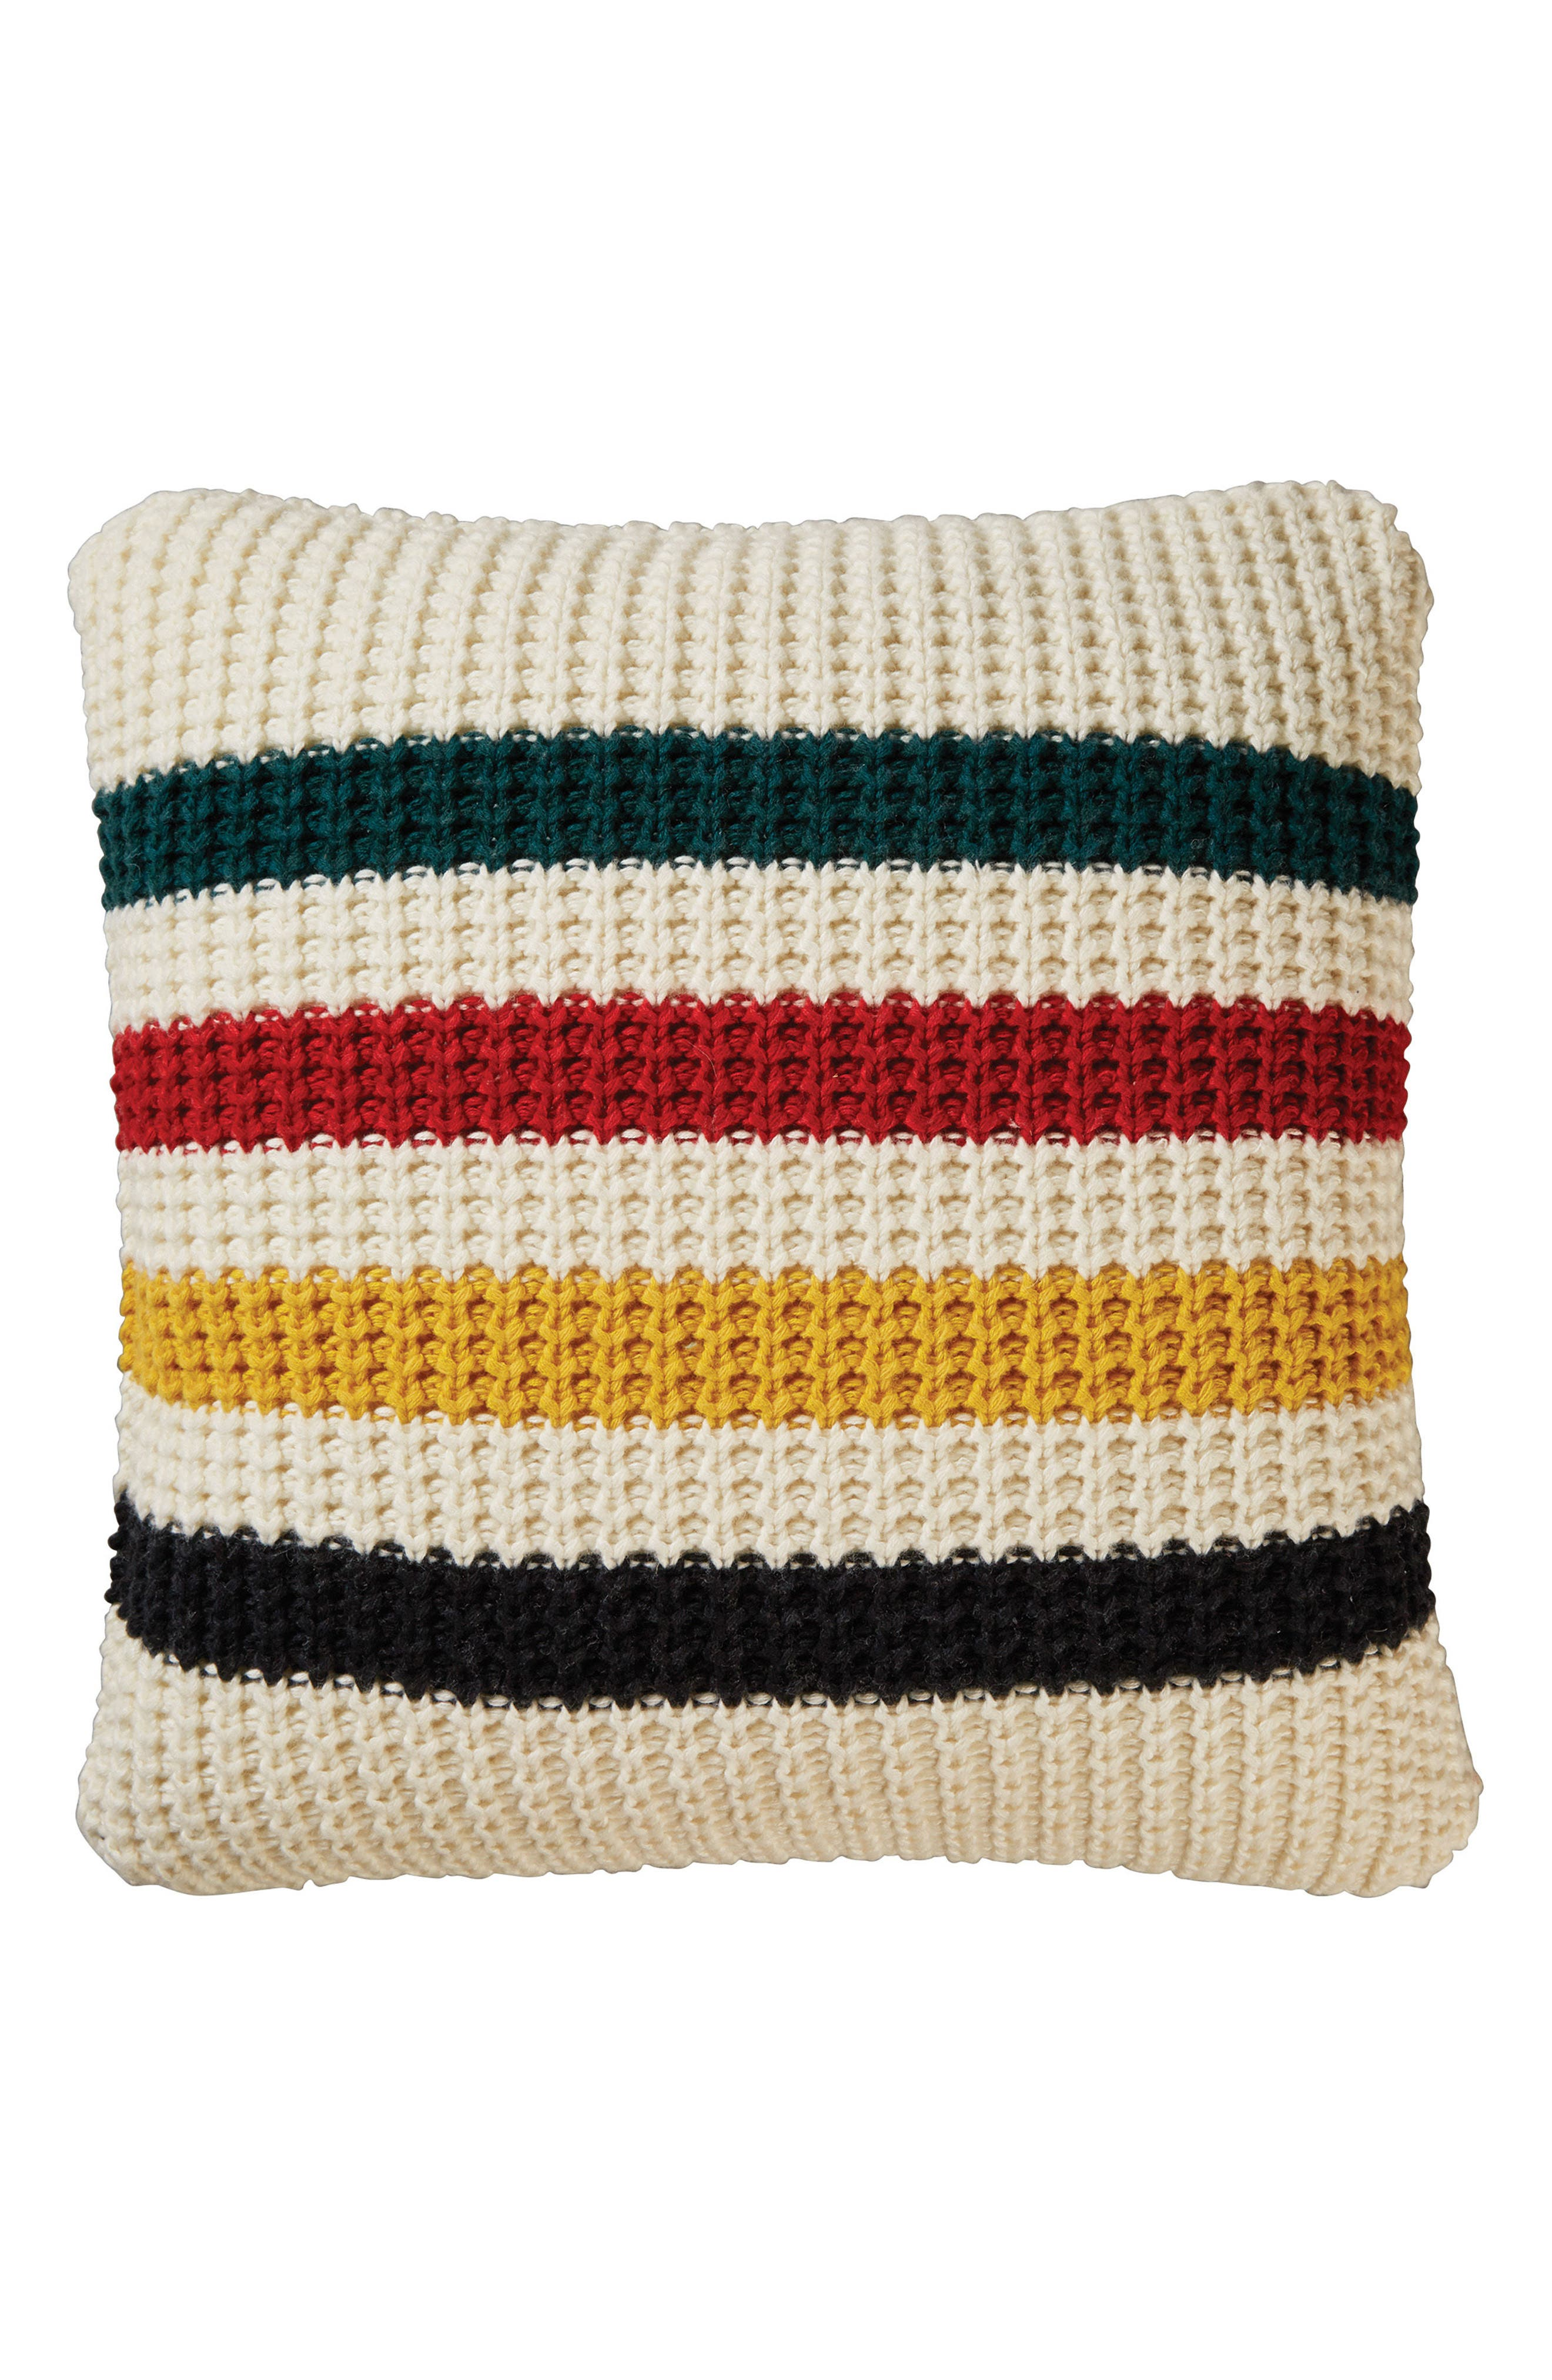 Glacier Park Knit Pillow,                             Main thumbnail 1, color,                             104